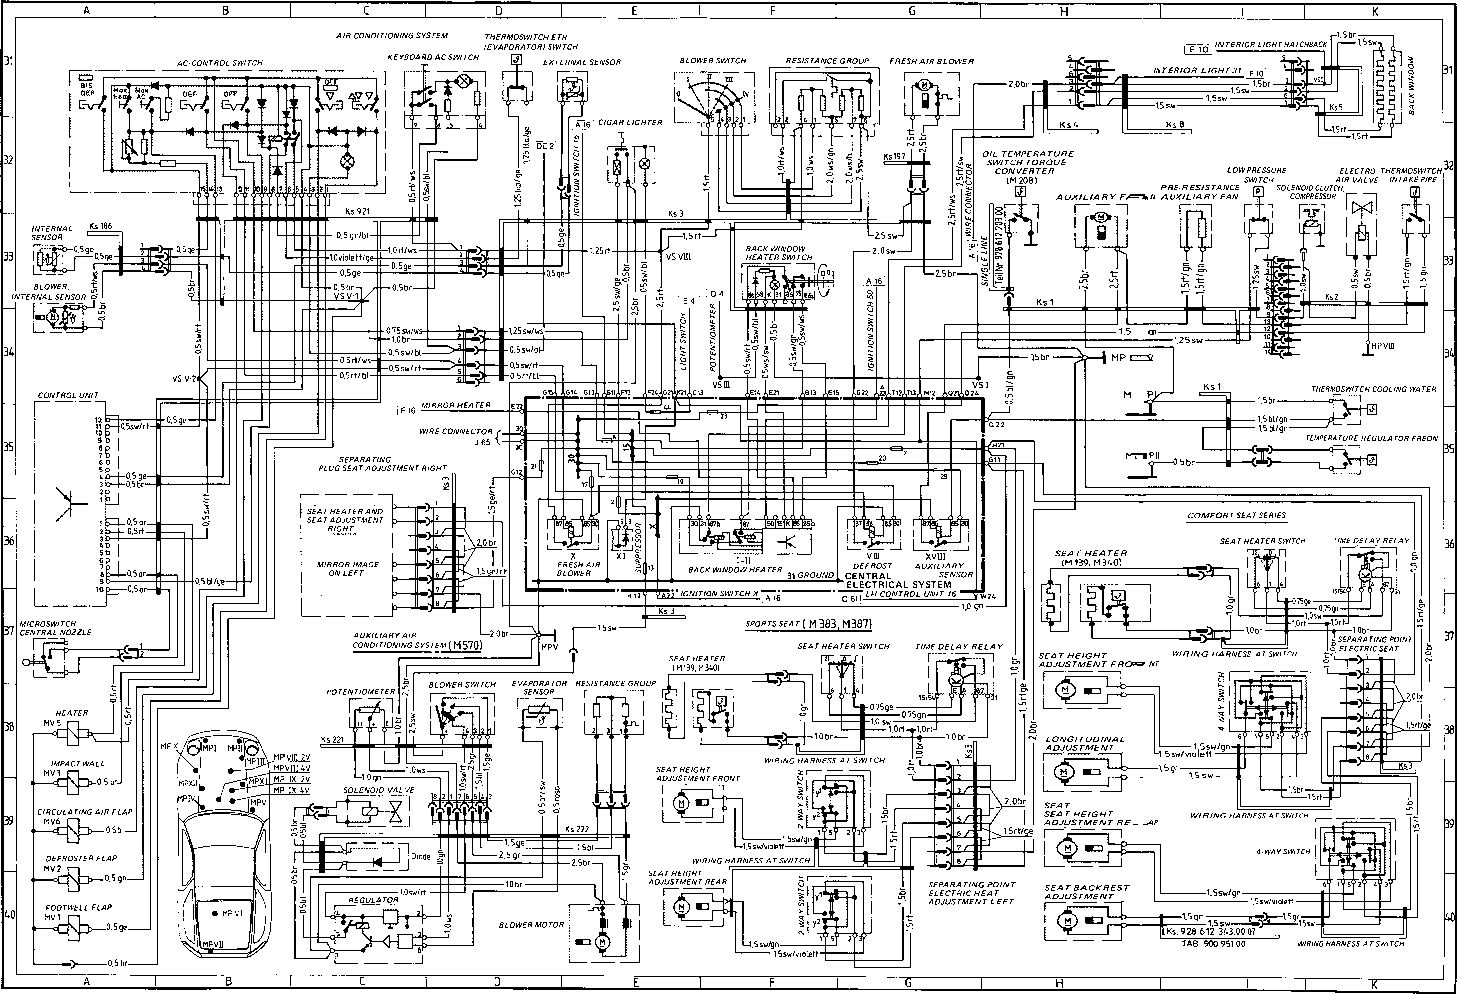 2129_924_2019 924 diagram porsche 928 wiring diagram free on porsche download wirning diagrams porsche 914 fuse box diagram at soozxer.org